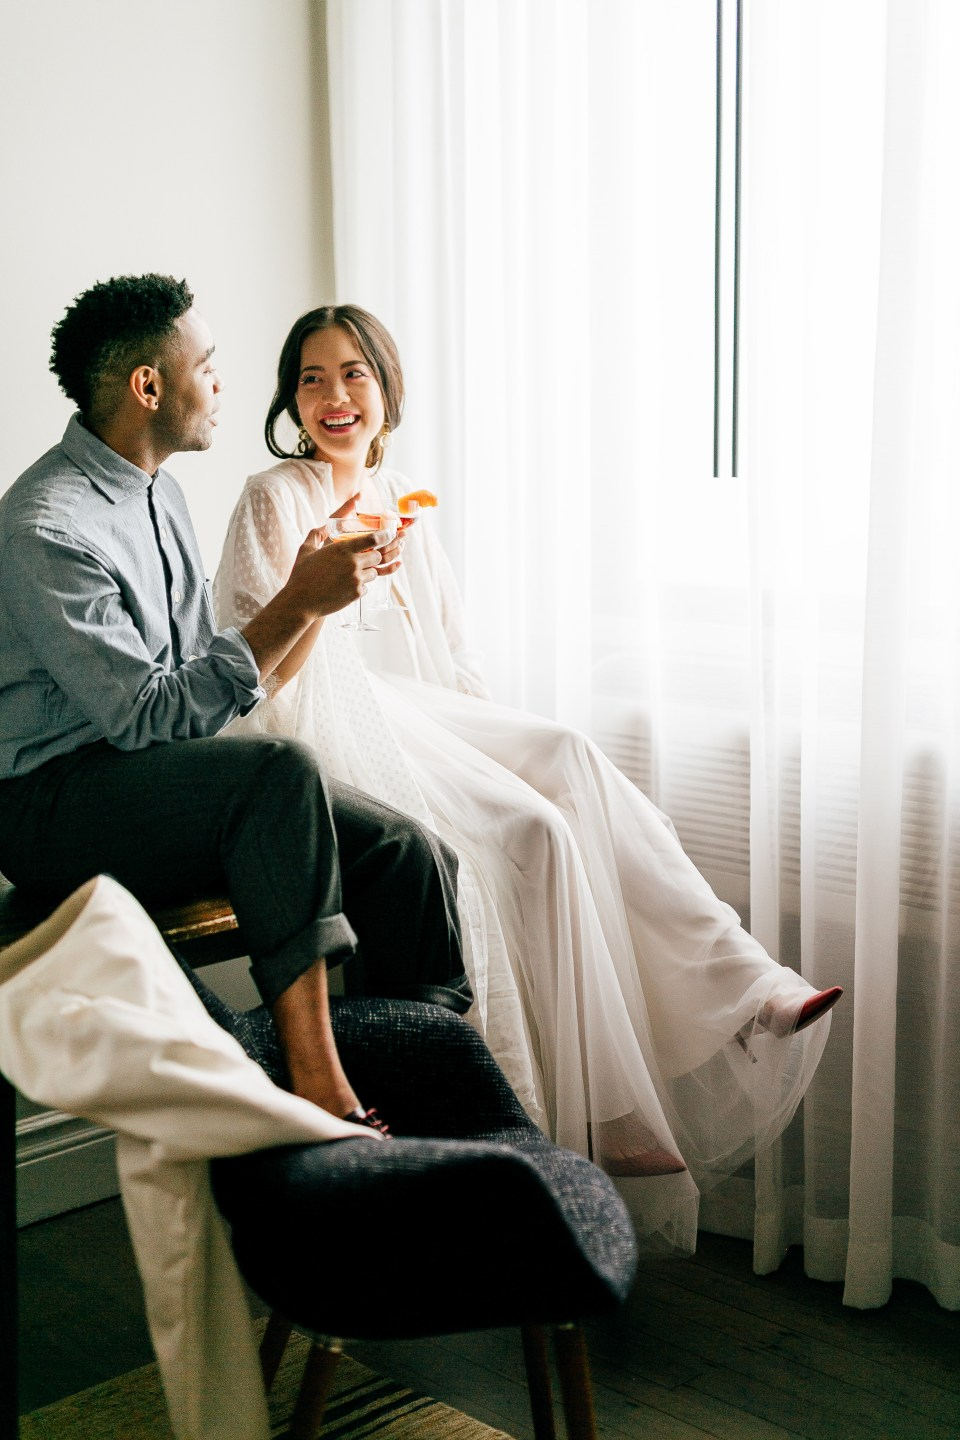 Ethically styled couple sits near window, clinking glasses